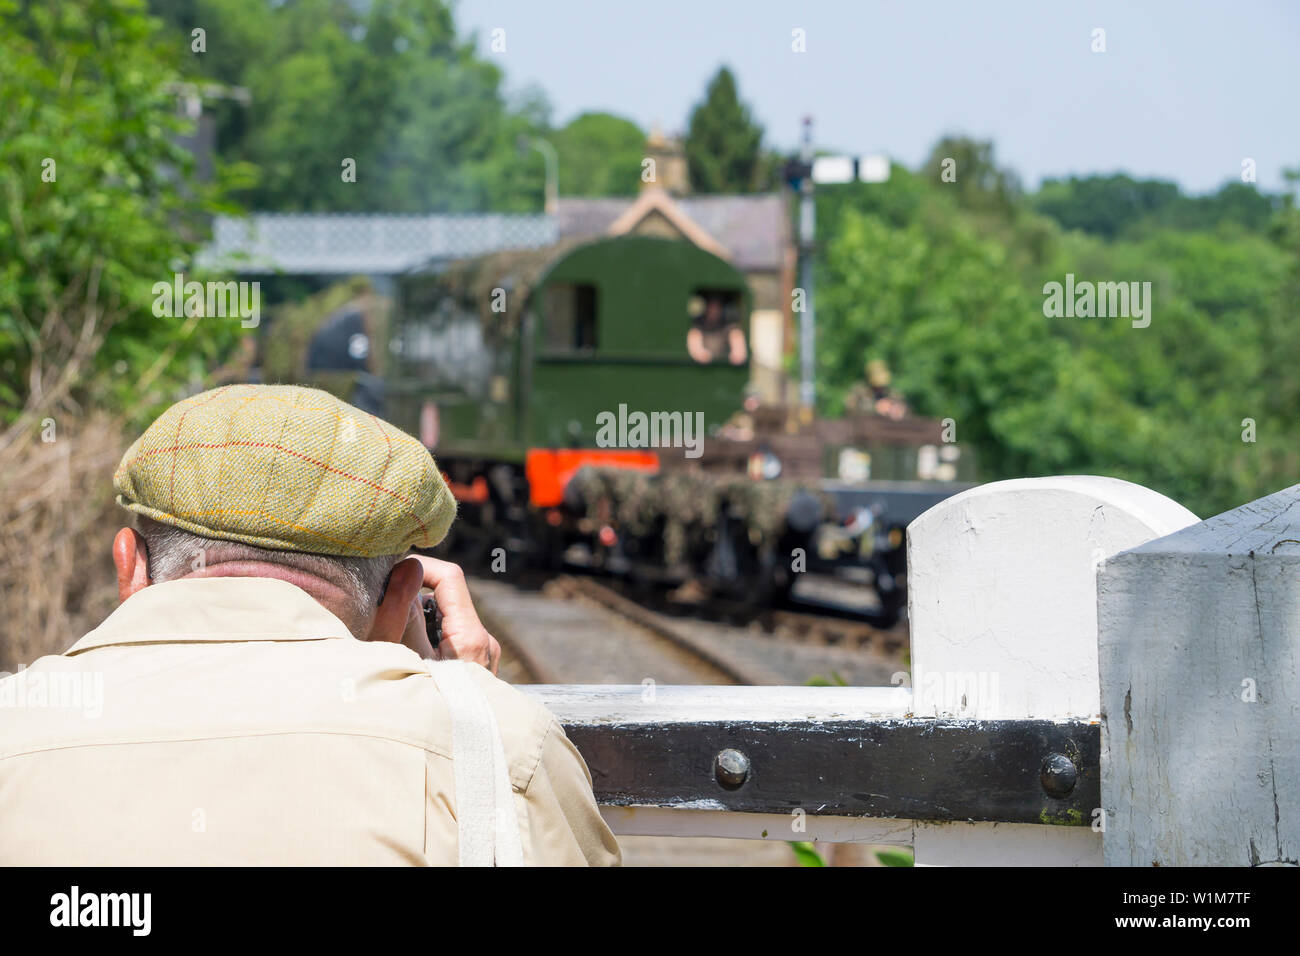 Kidderminster, UK. 29th June, 2019. Severn Valley Railways 'Step back to the 1940's' gets off to a fabulous start this weekend with costumed re-enactors playing their part in providing an authentic recreation of wartime Britain. A senior man in flat cap stands by a vintage railway station gate, photographing the steam train activity. Credit: Lee Hudson - Stock Image